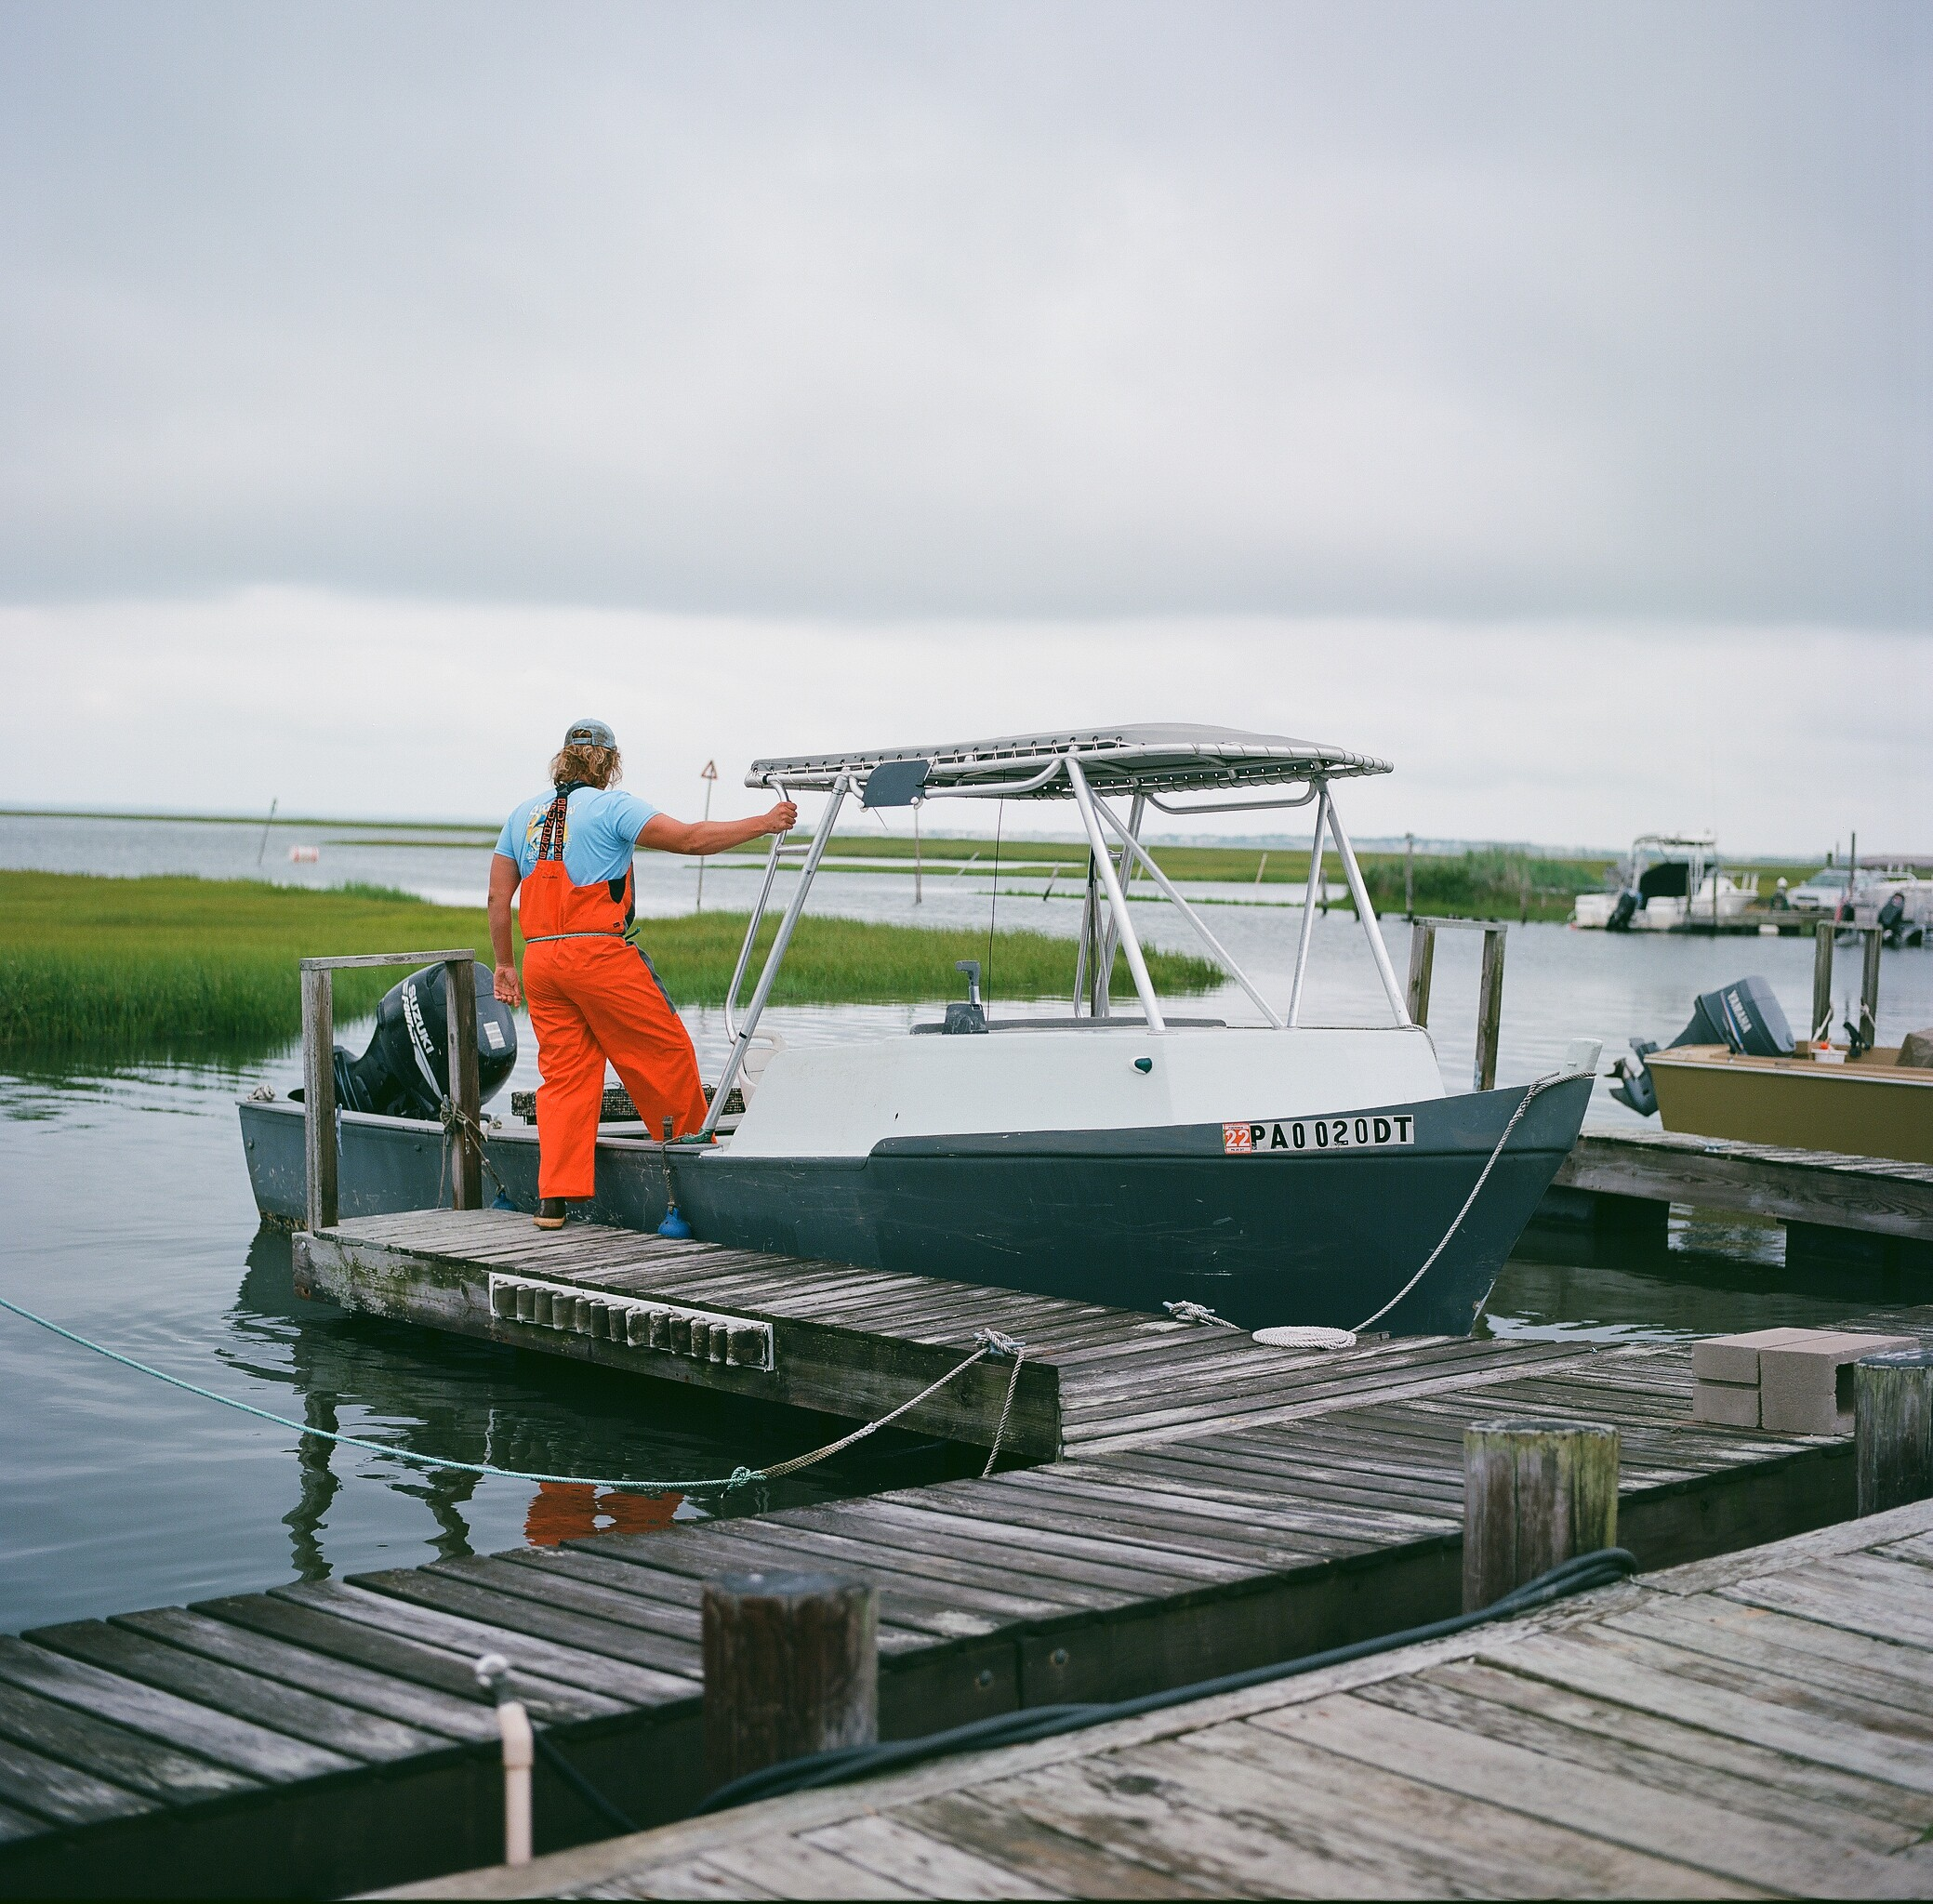 Sean heading out to harvest oysters, shot on medium format film.